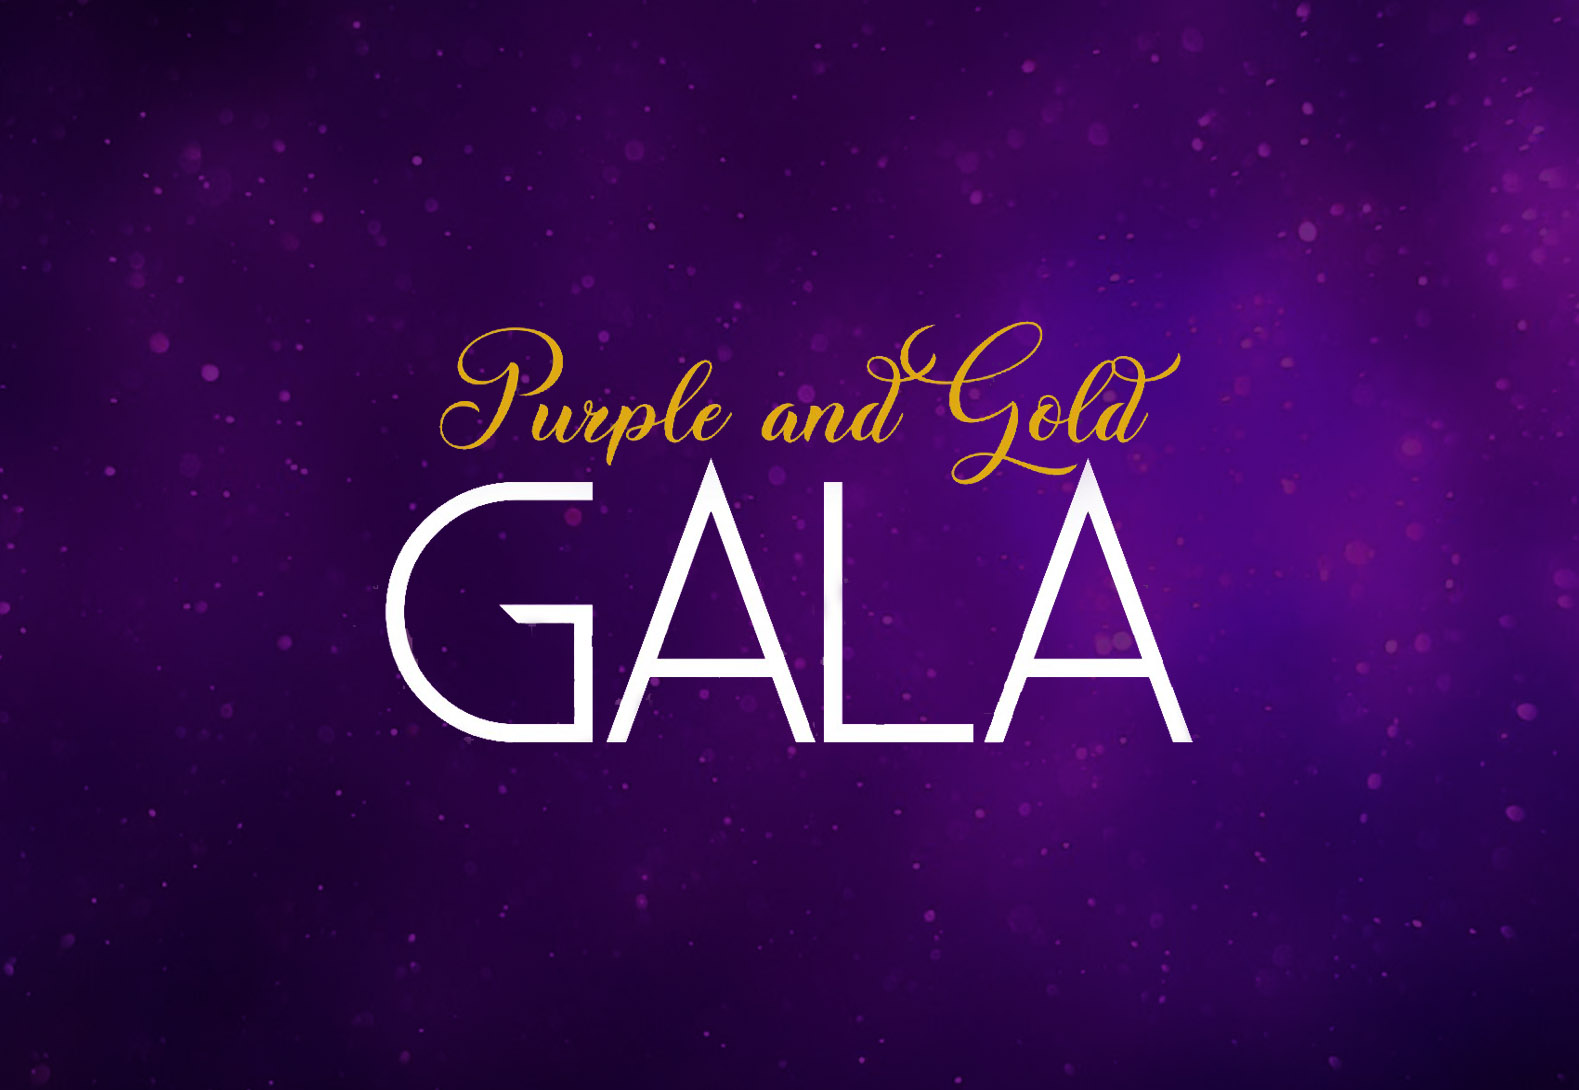 Purple & Gold Gala: What You Need to Know